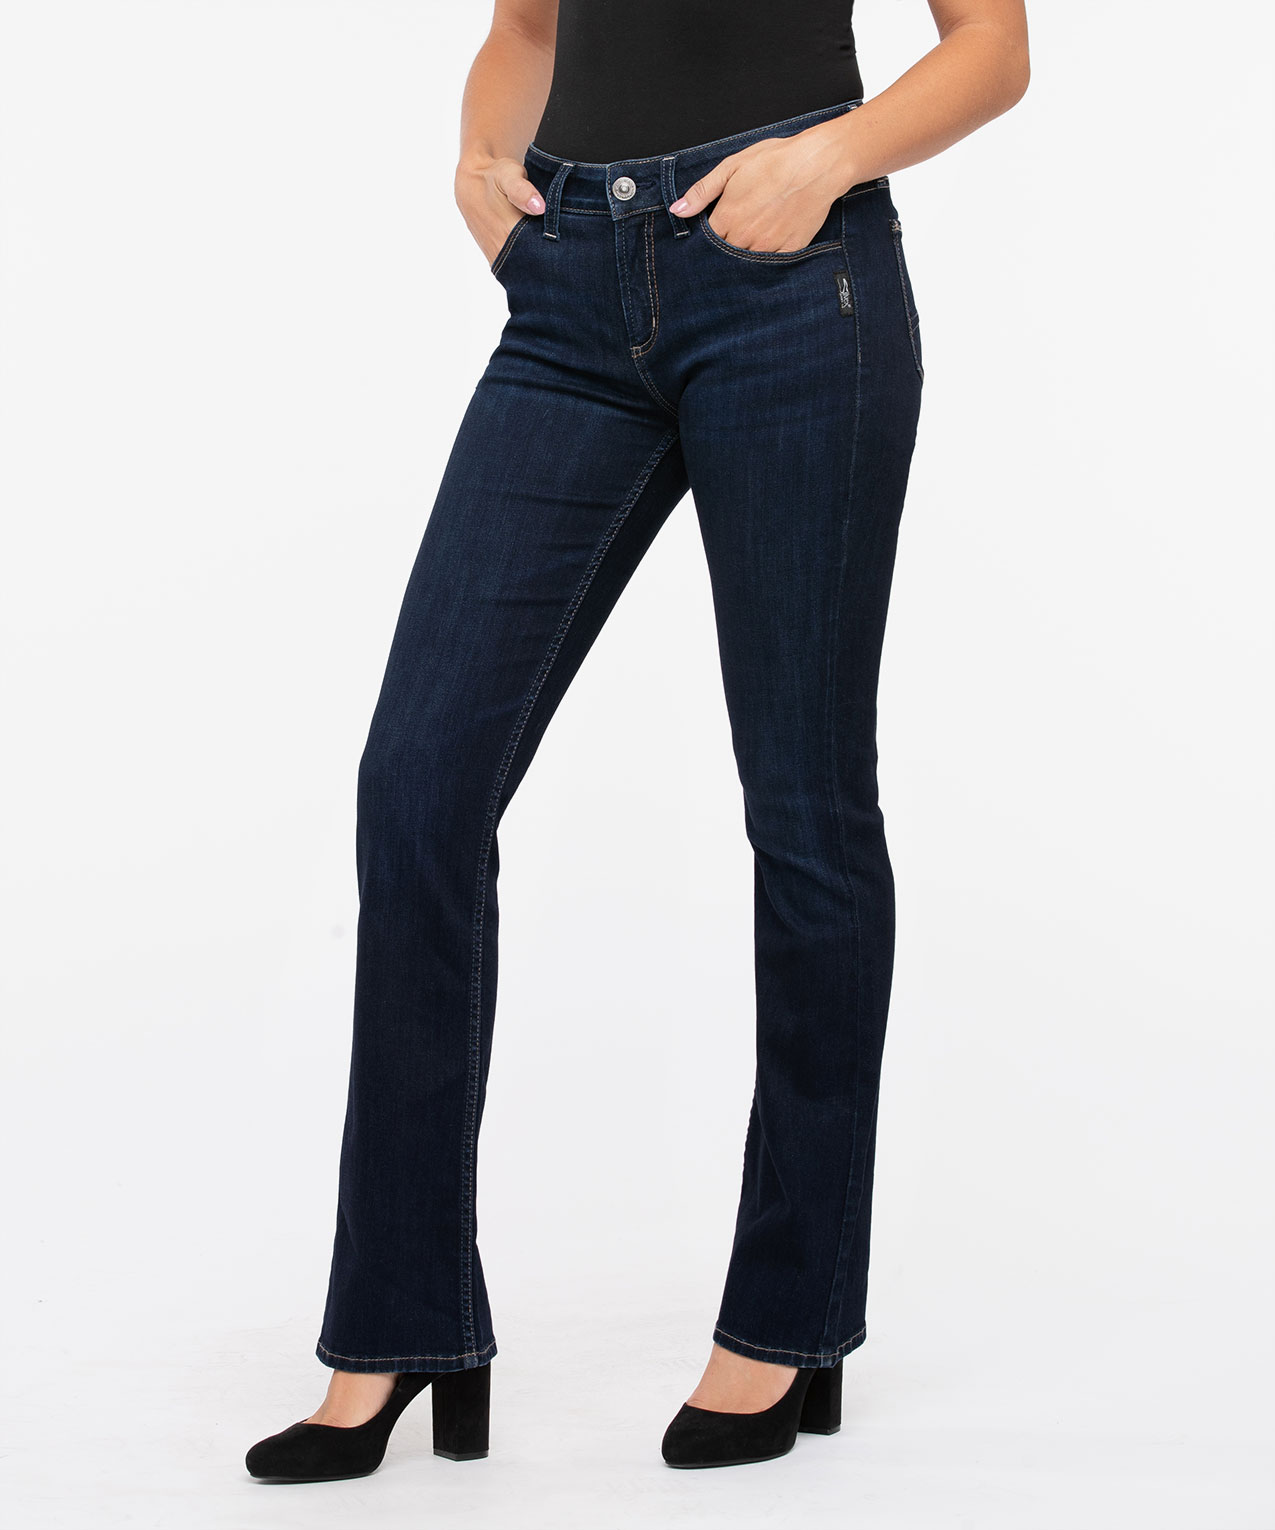 Silver Jeans Co. Avery High Rise Bootcut, Dark Blue, hi-res